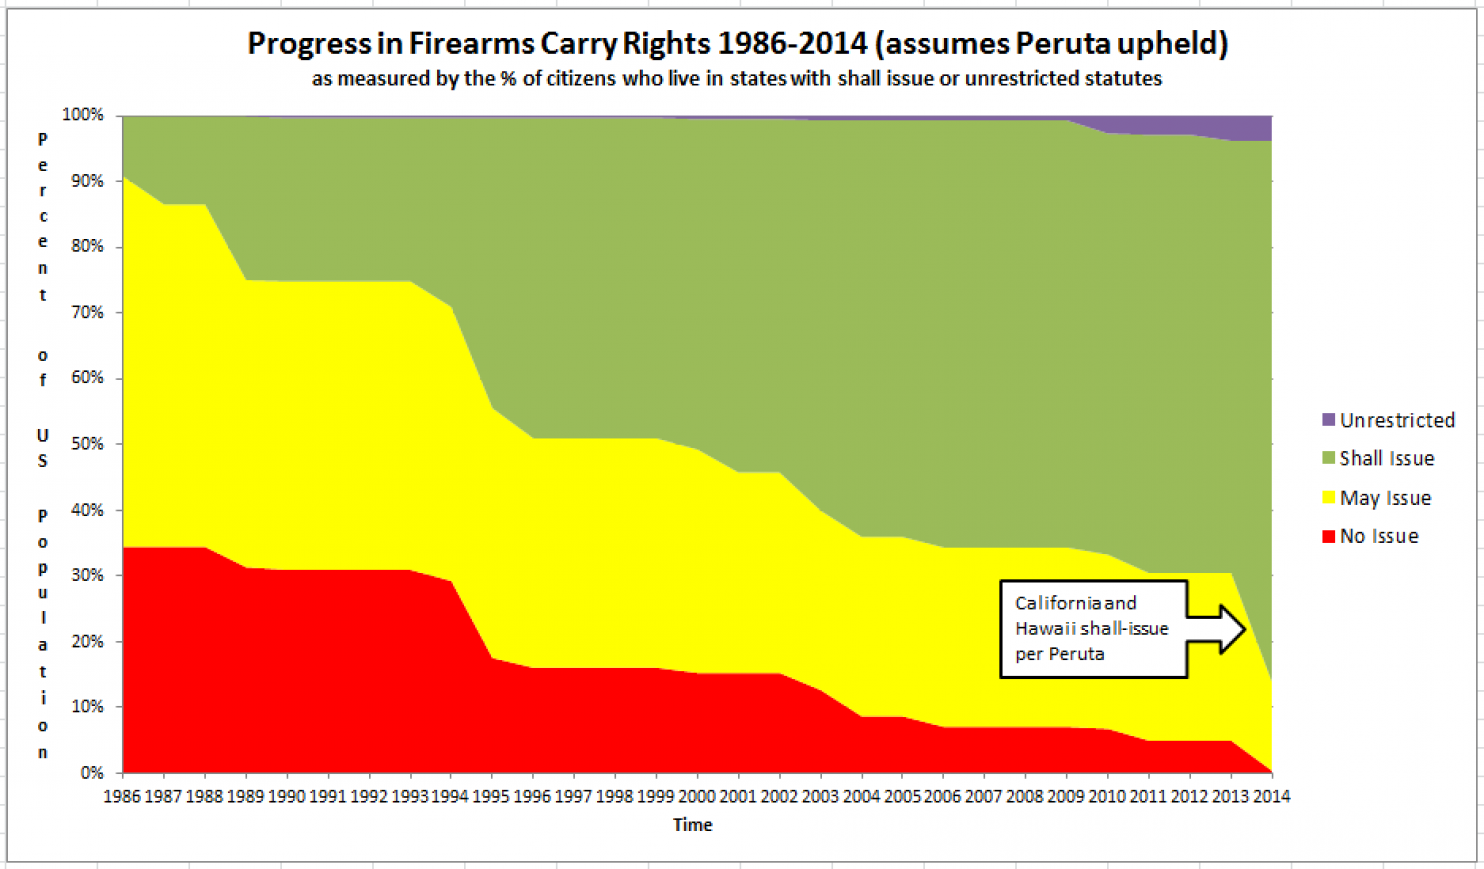 Graphical Depiction of Spread of Right to Carry in United States (1986-2014)